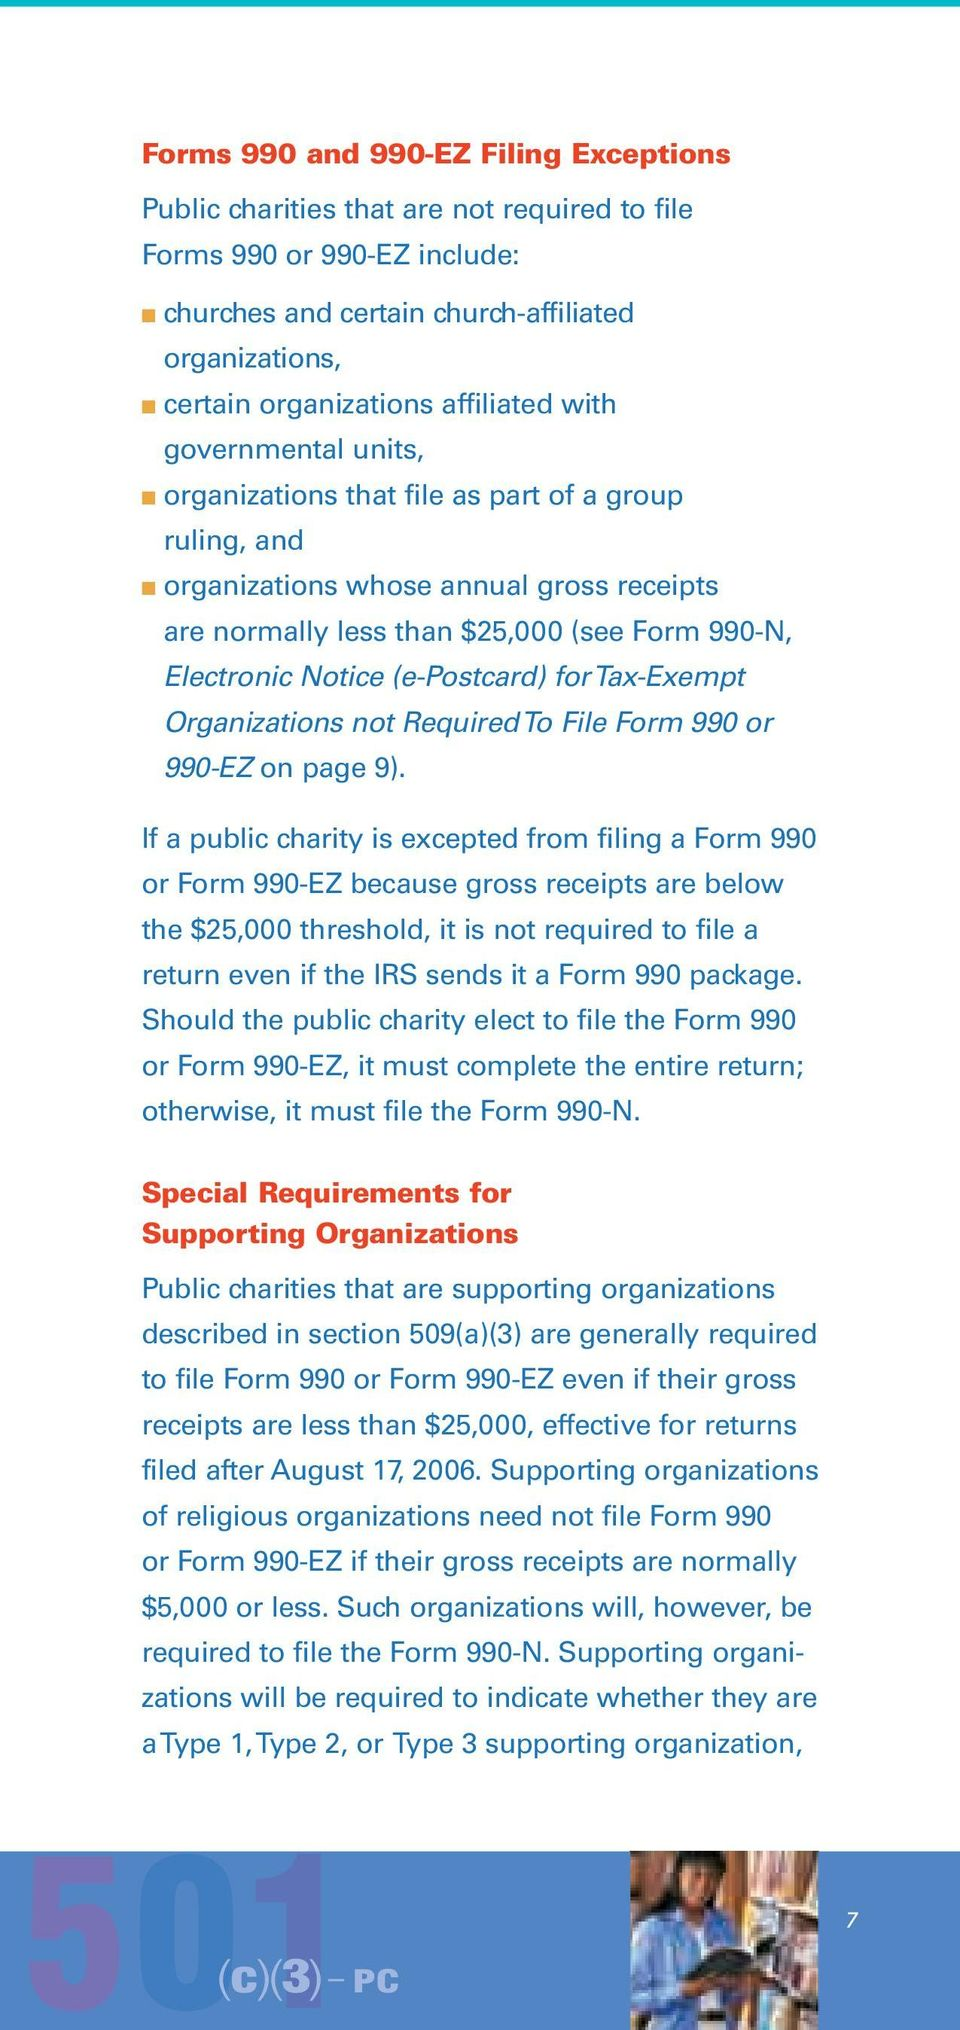 (e-postcard) for Tax-Exempt Organizations not Required To File Form 990 or 990-EZ on page 9).